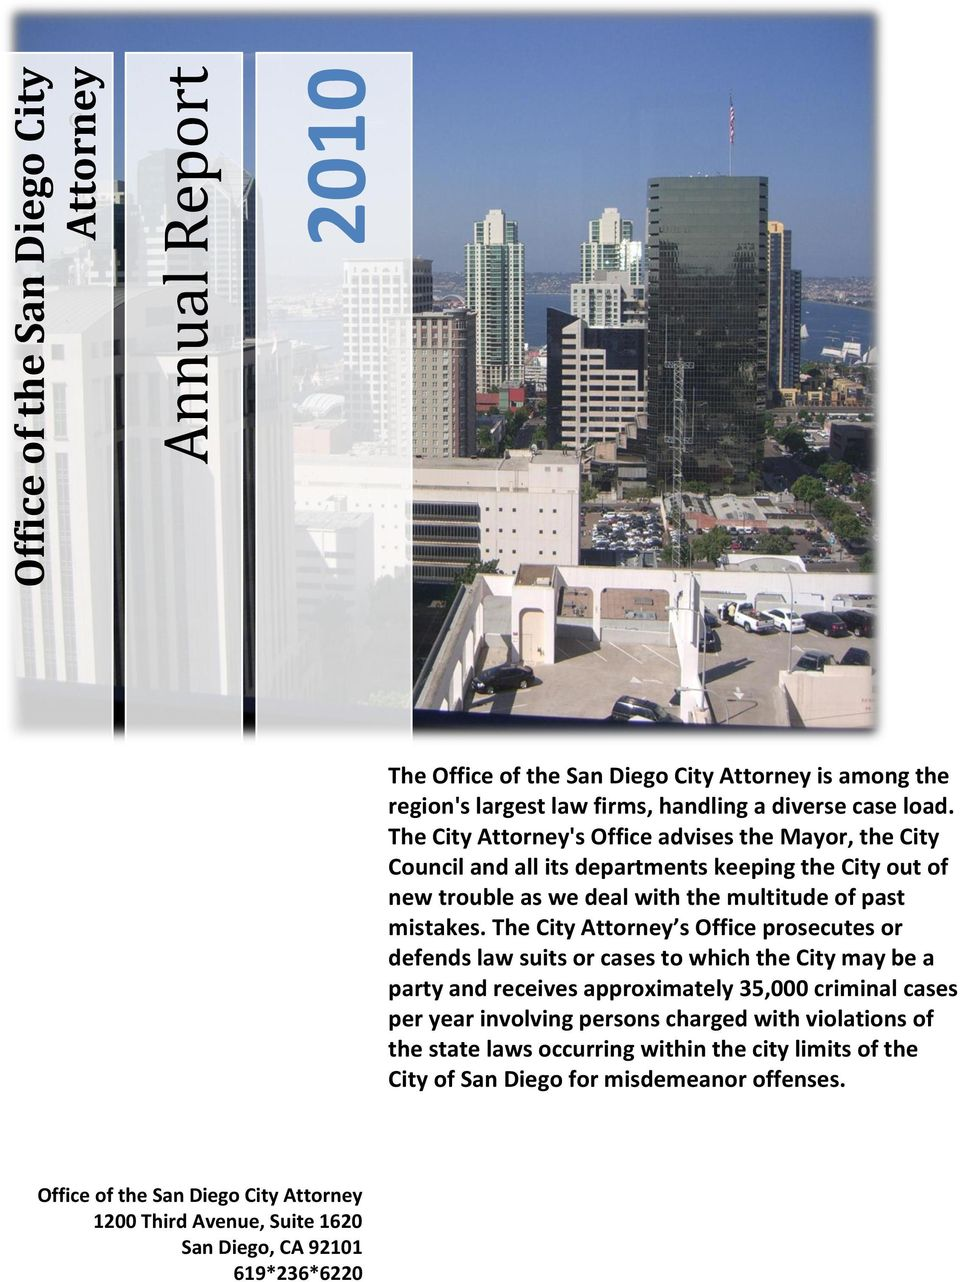 The City Attorney s Office prosecutes or defends law suits or cases to which the City may be a party and receives approximately 35,000 criminal cases per year involving persons charged